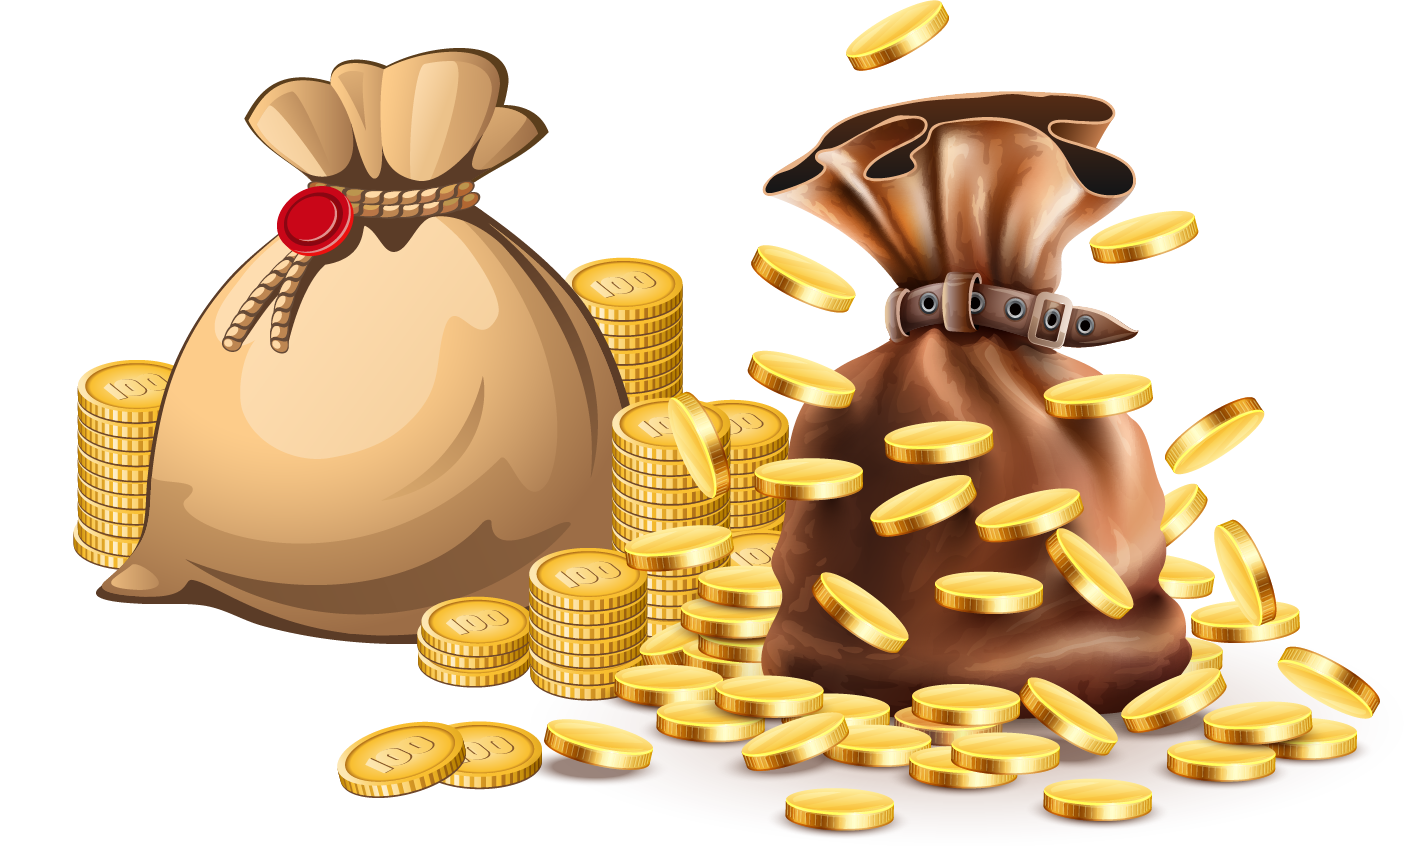 Stock photography clip art. Treasure clipart bag gold coin